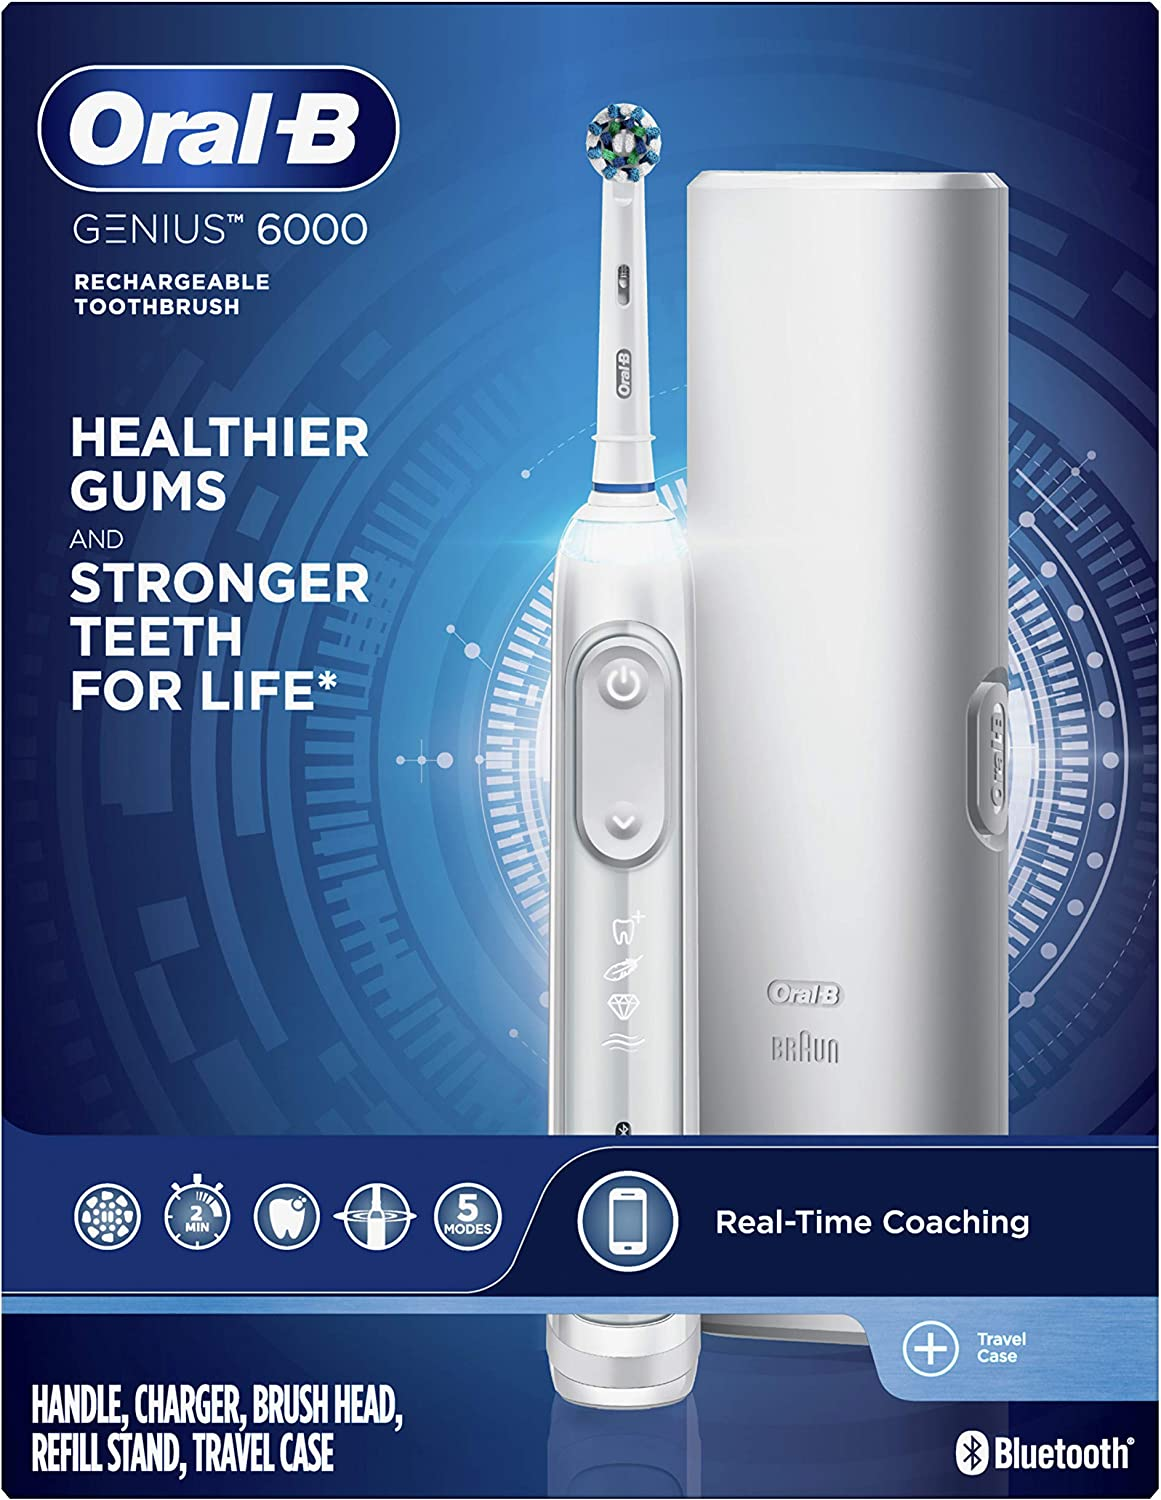 Braun finished goods Pro600 Cross Action Rechargeable Toothbrush  PC600